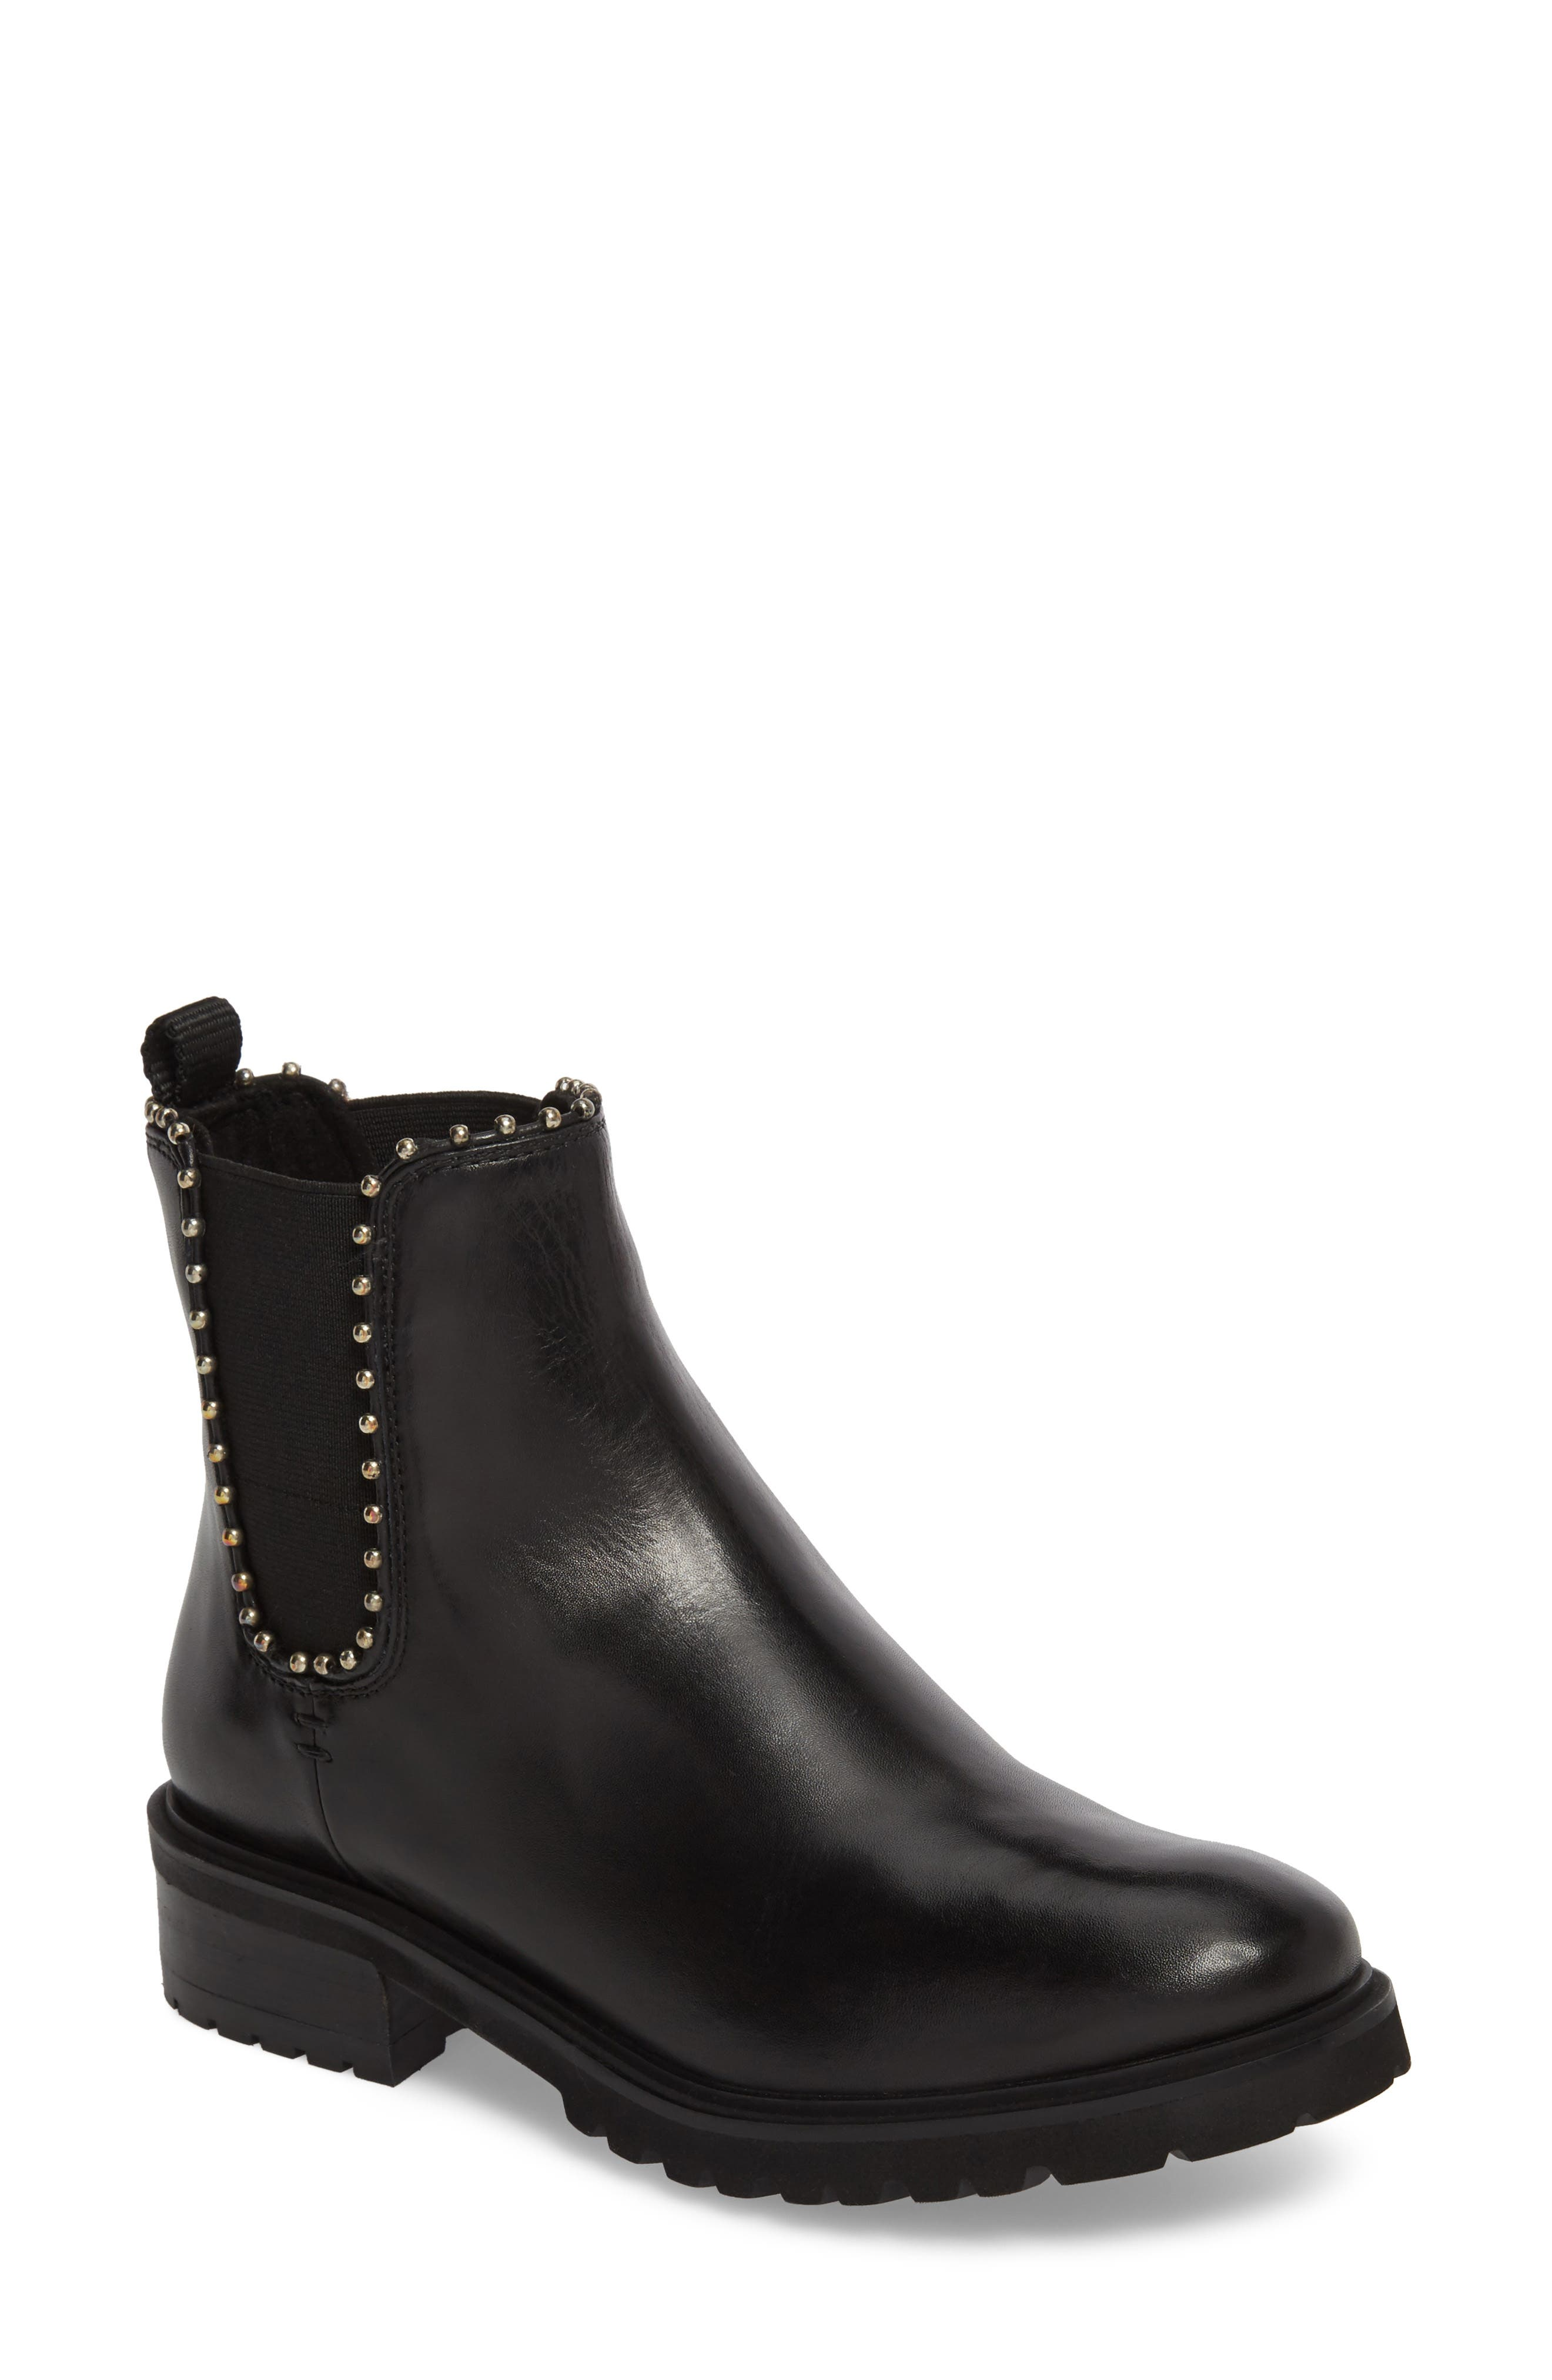 Berkley Chelsea Bootie,                             Main thumbnail 1, color,                             Black Leather